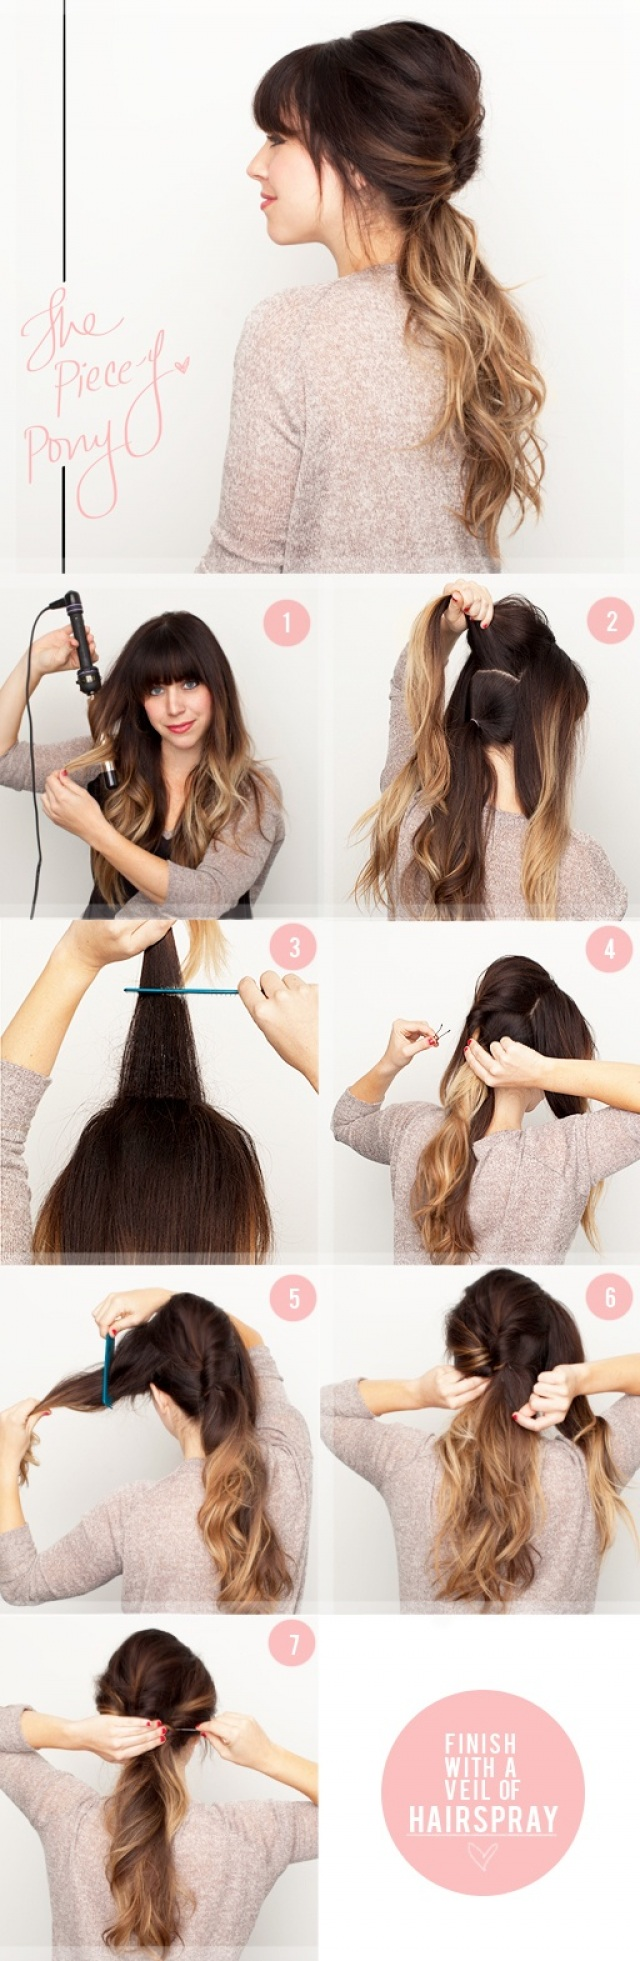 The vintage pony - 15 ways to make cute ponytails